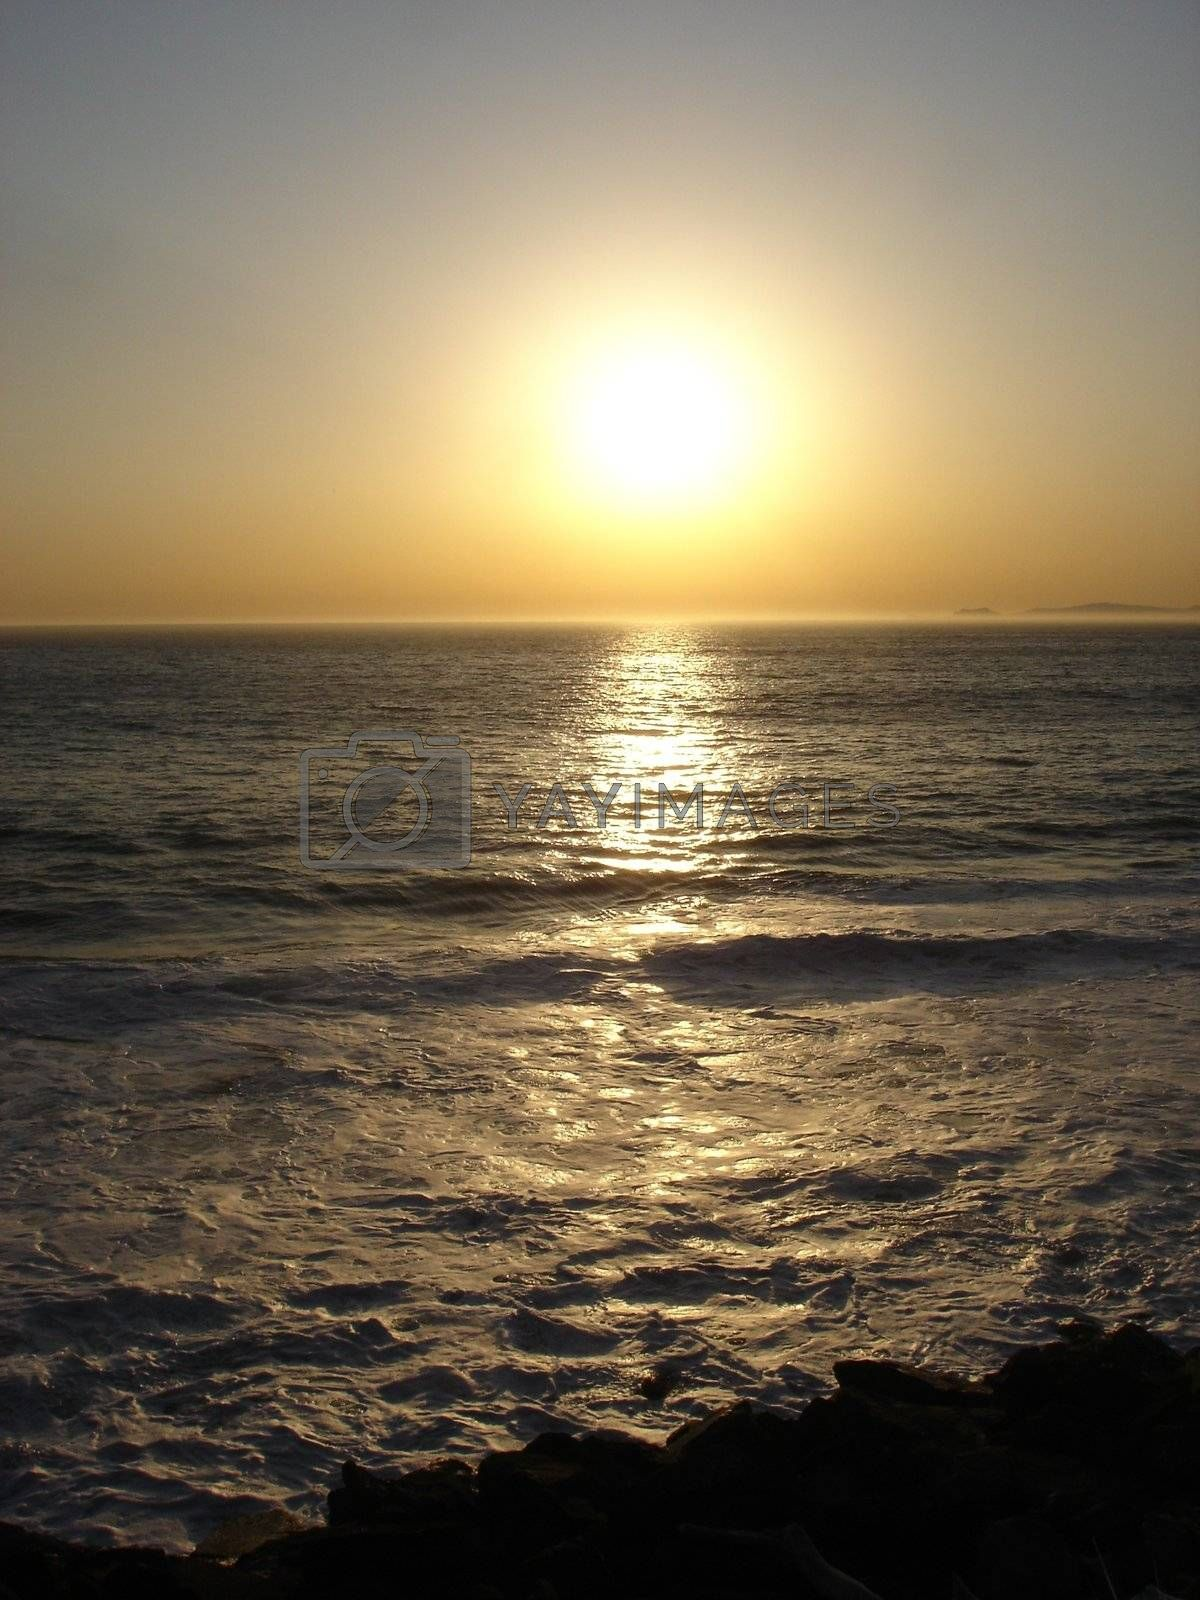 Royalty free image of Sunset by solheim